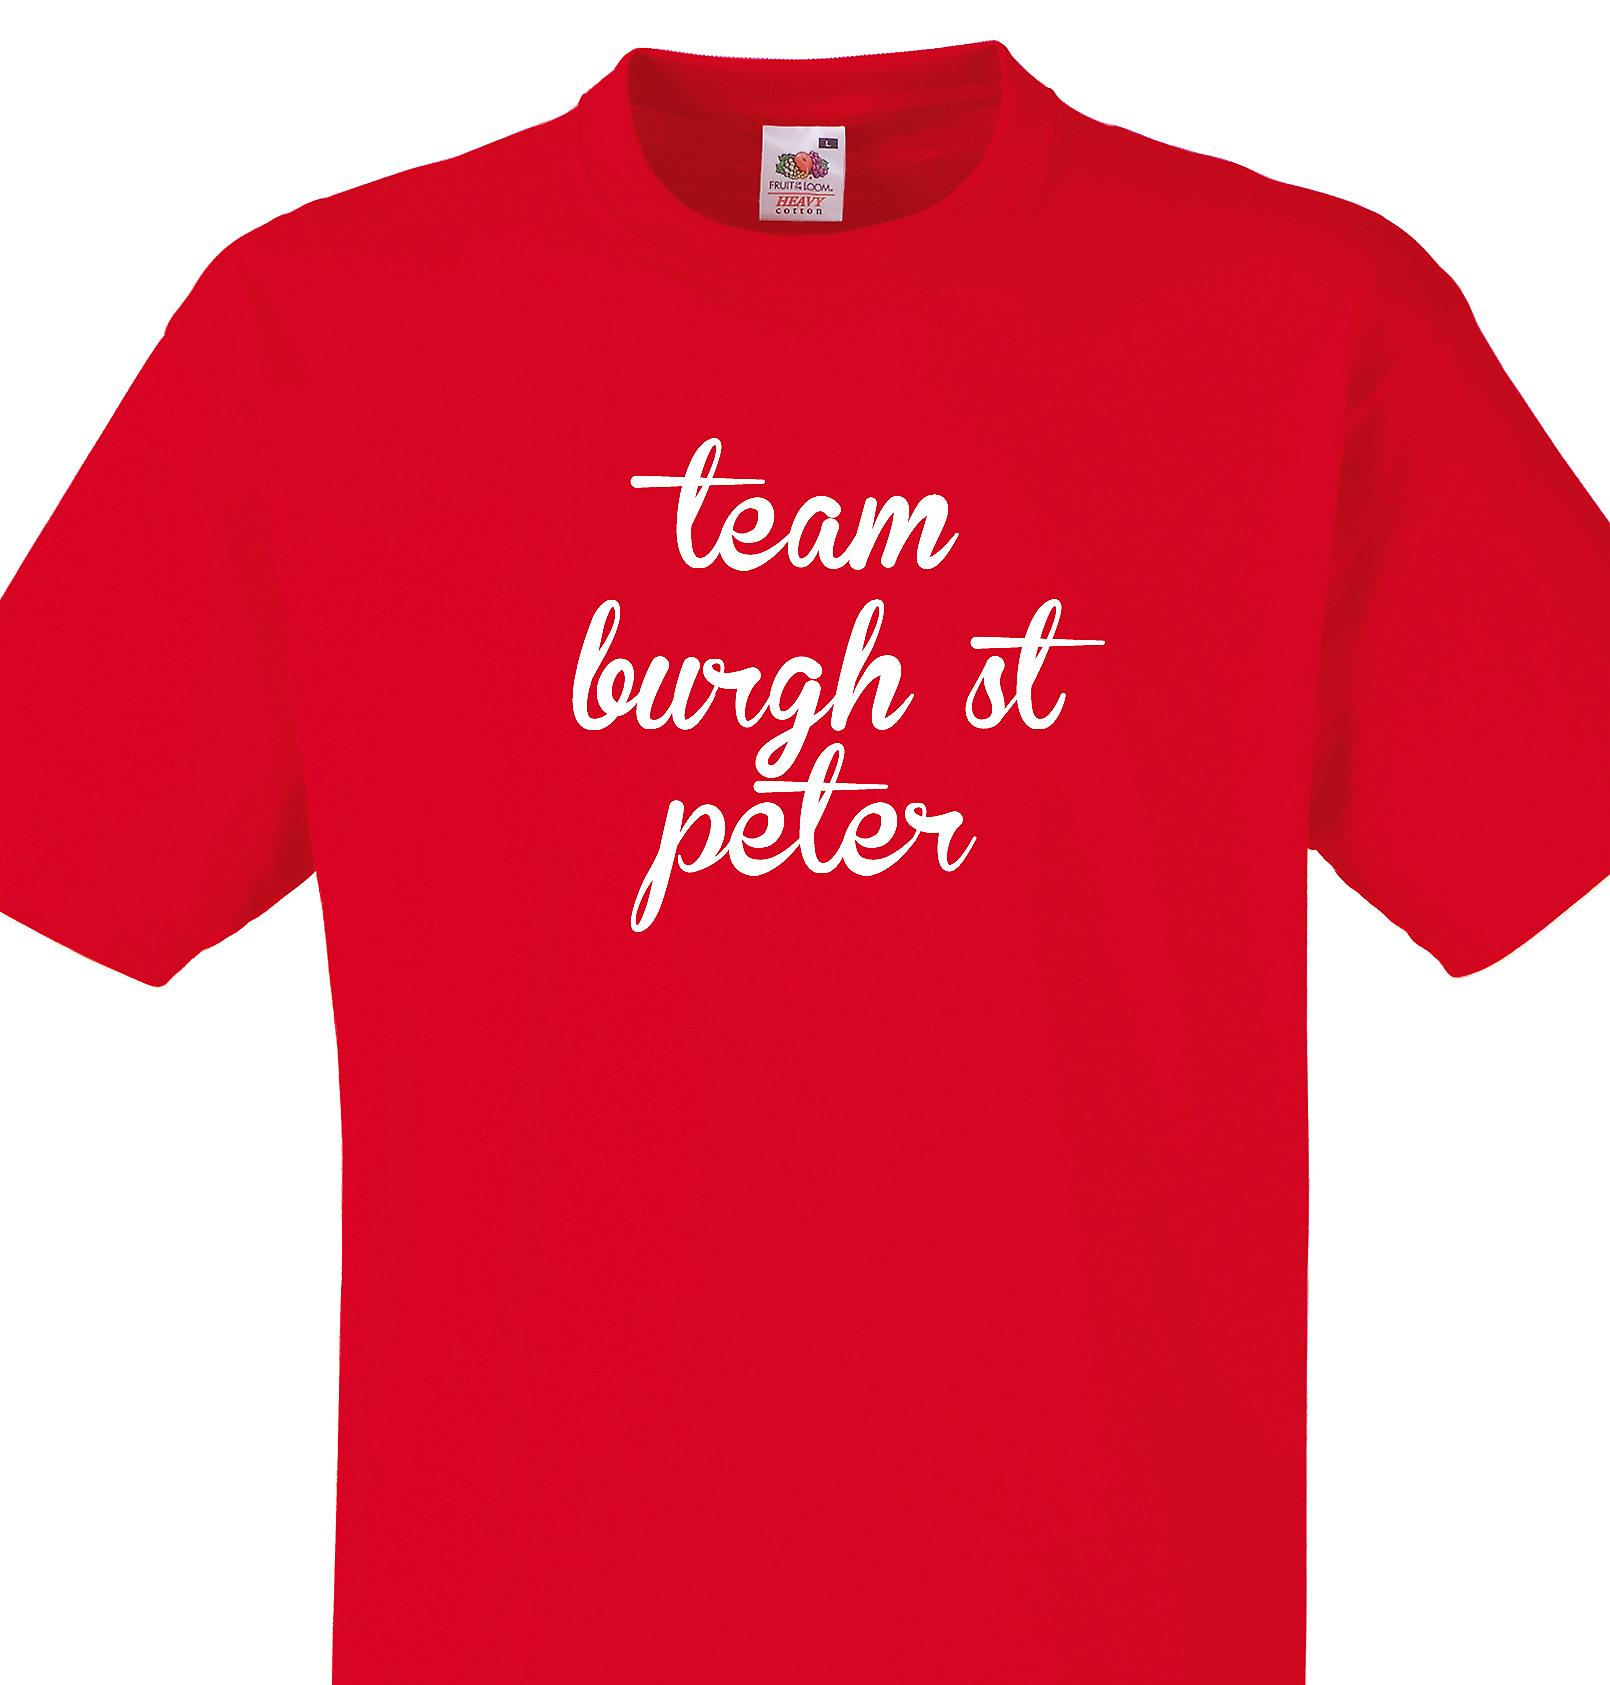 Team Burgh st peter Red T shirt